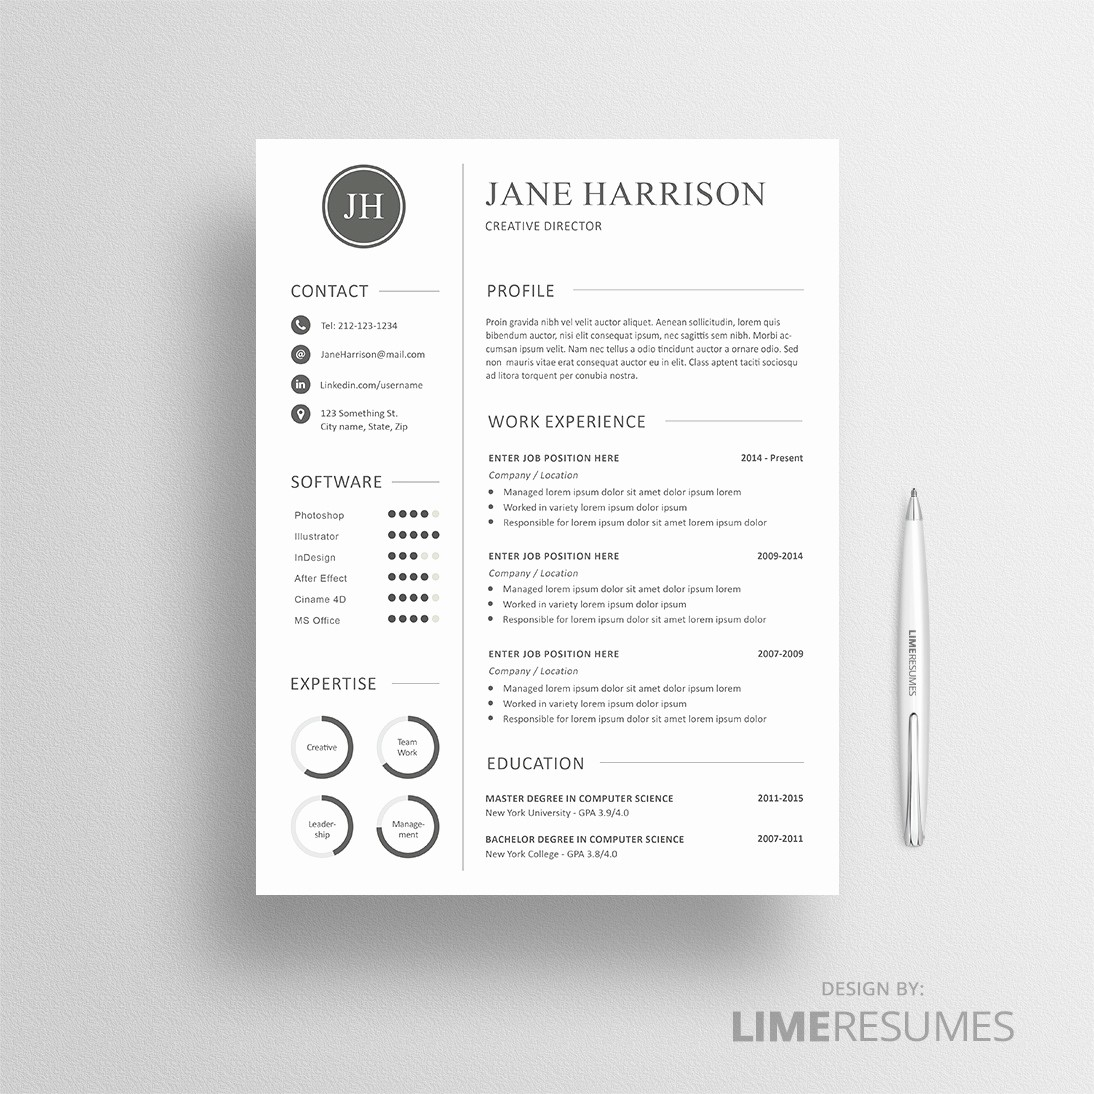 Free Creative Cover Letter Templates Inspirational Creative Resume Template for Creatives Limeresumes